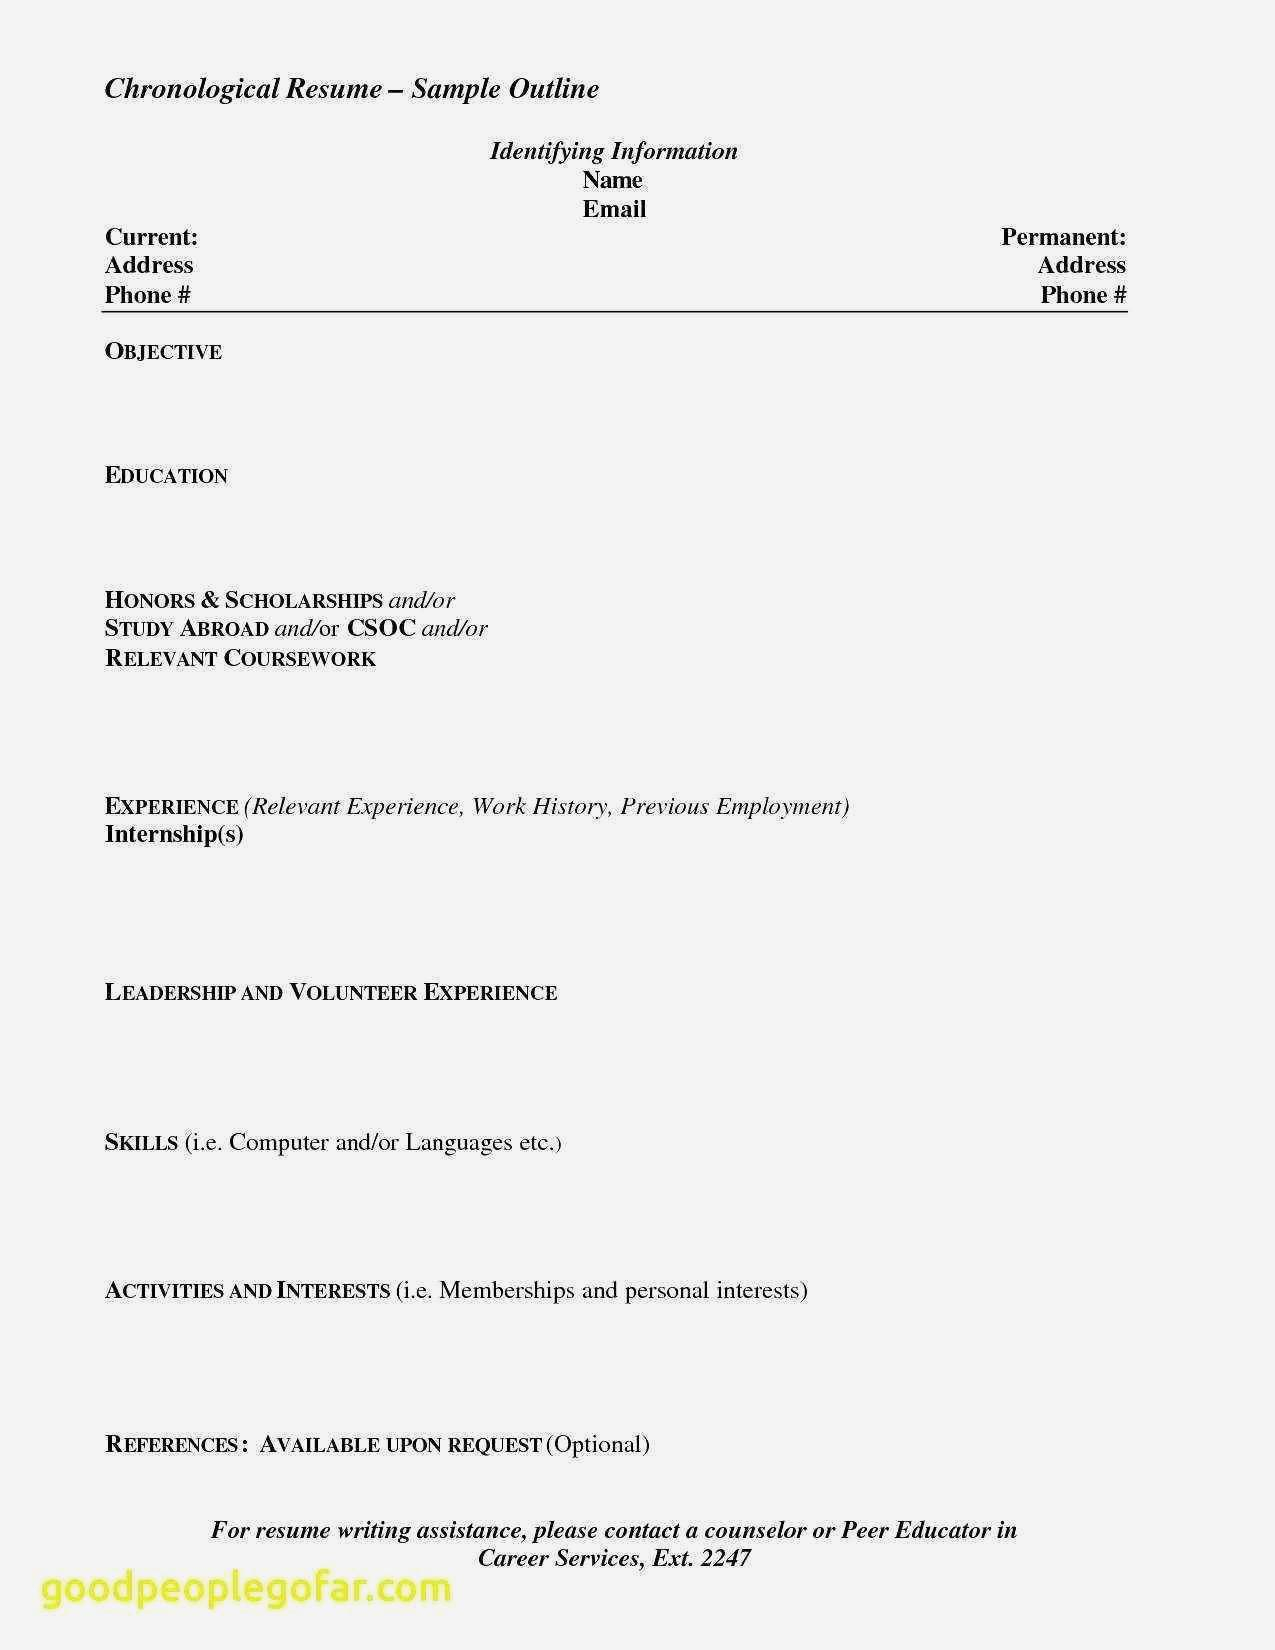 Open Office Resume Template Download - 44 Luxury Resume Templates for Openoffice Awesome Resume Example